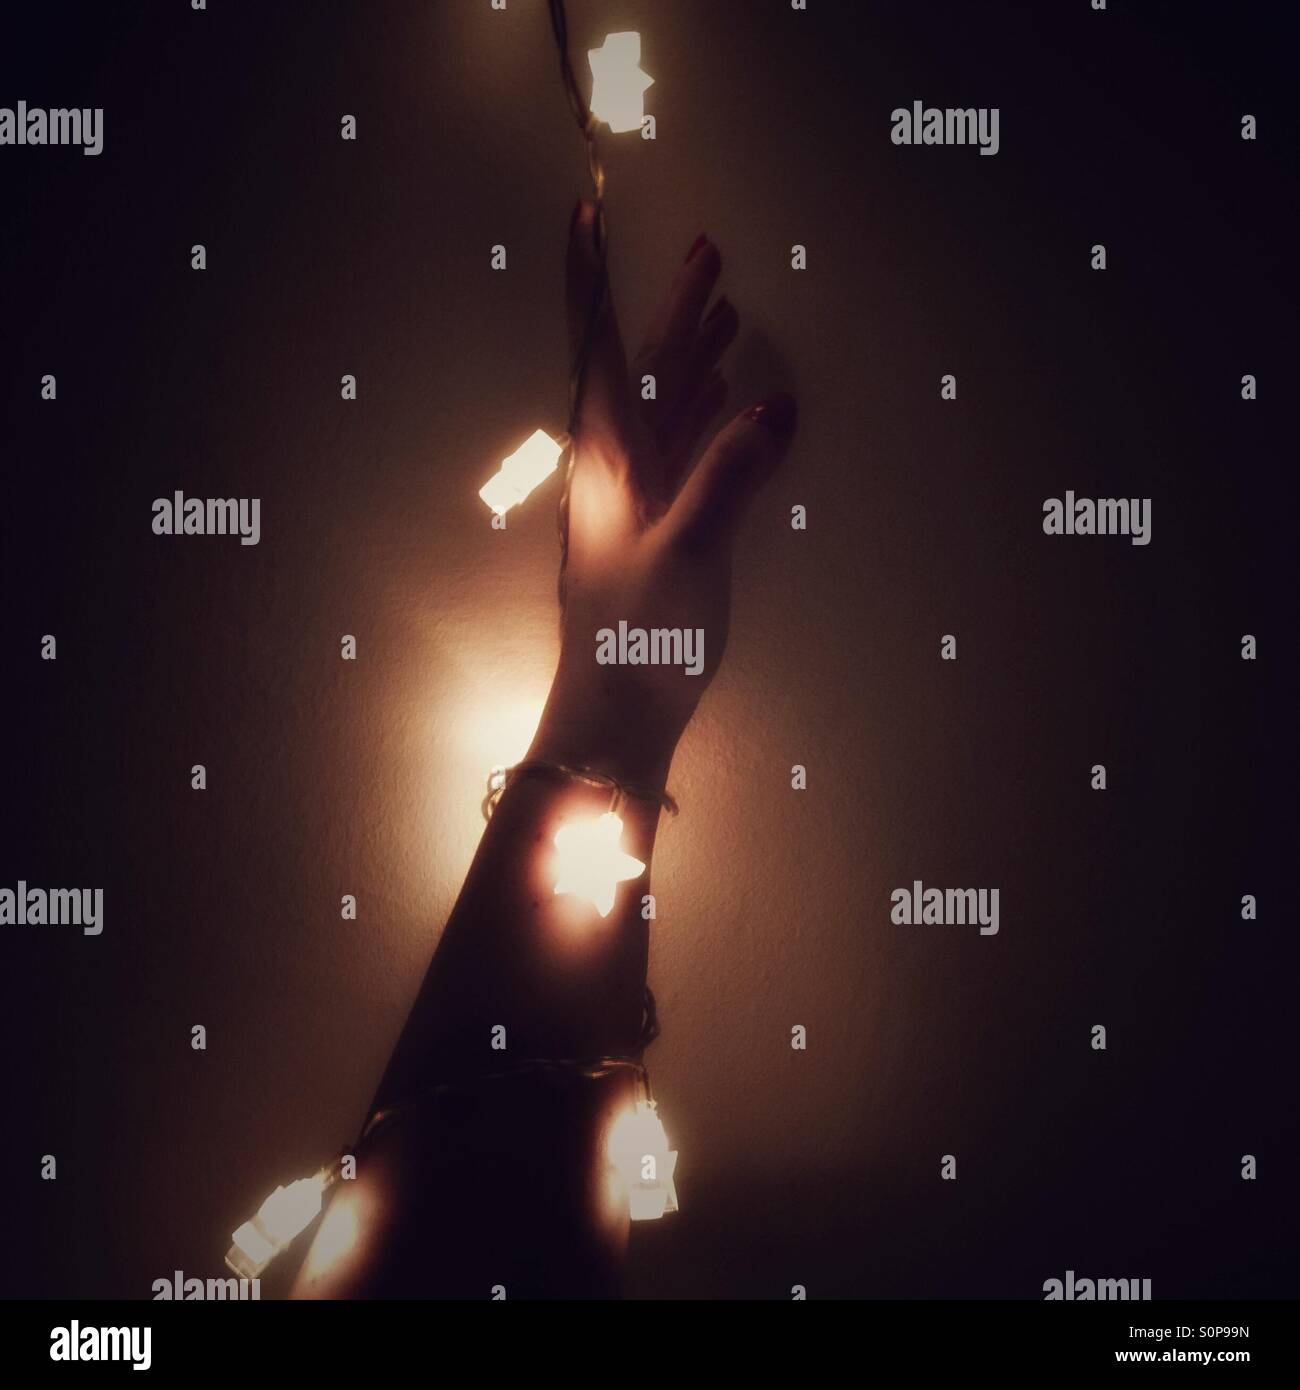 Reach for the stars - Stock Image